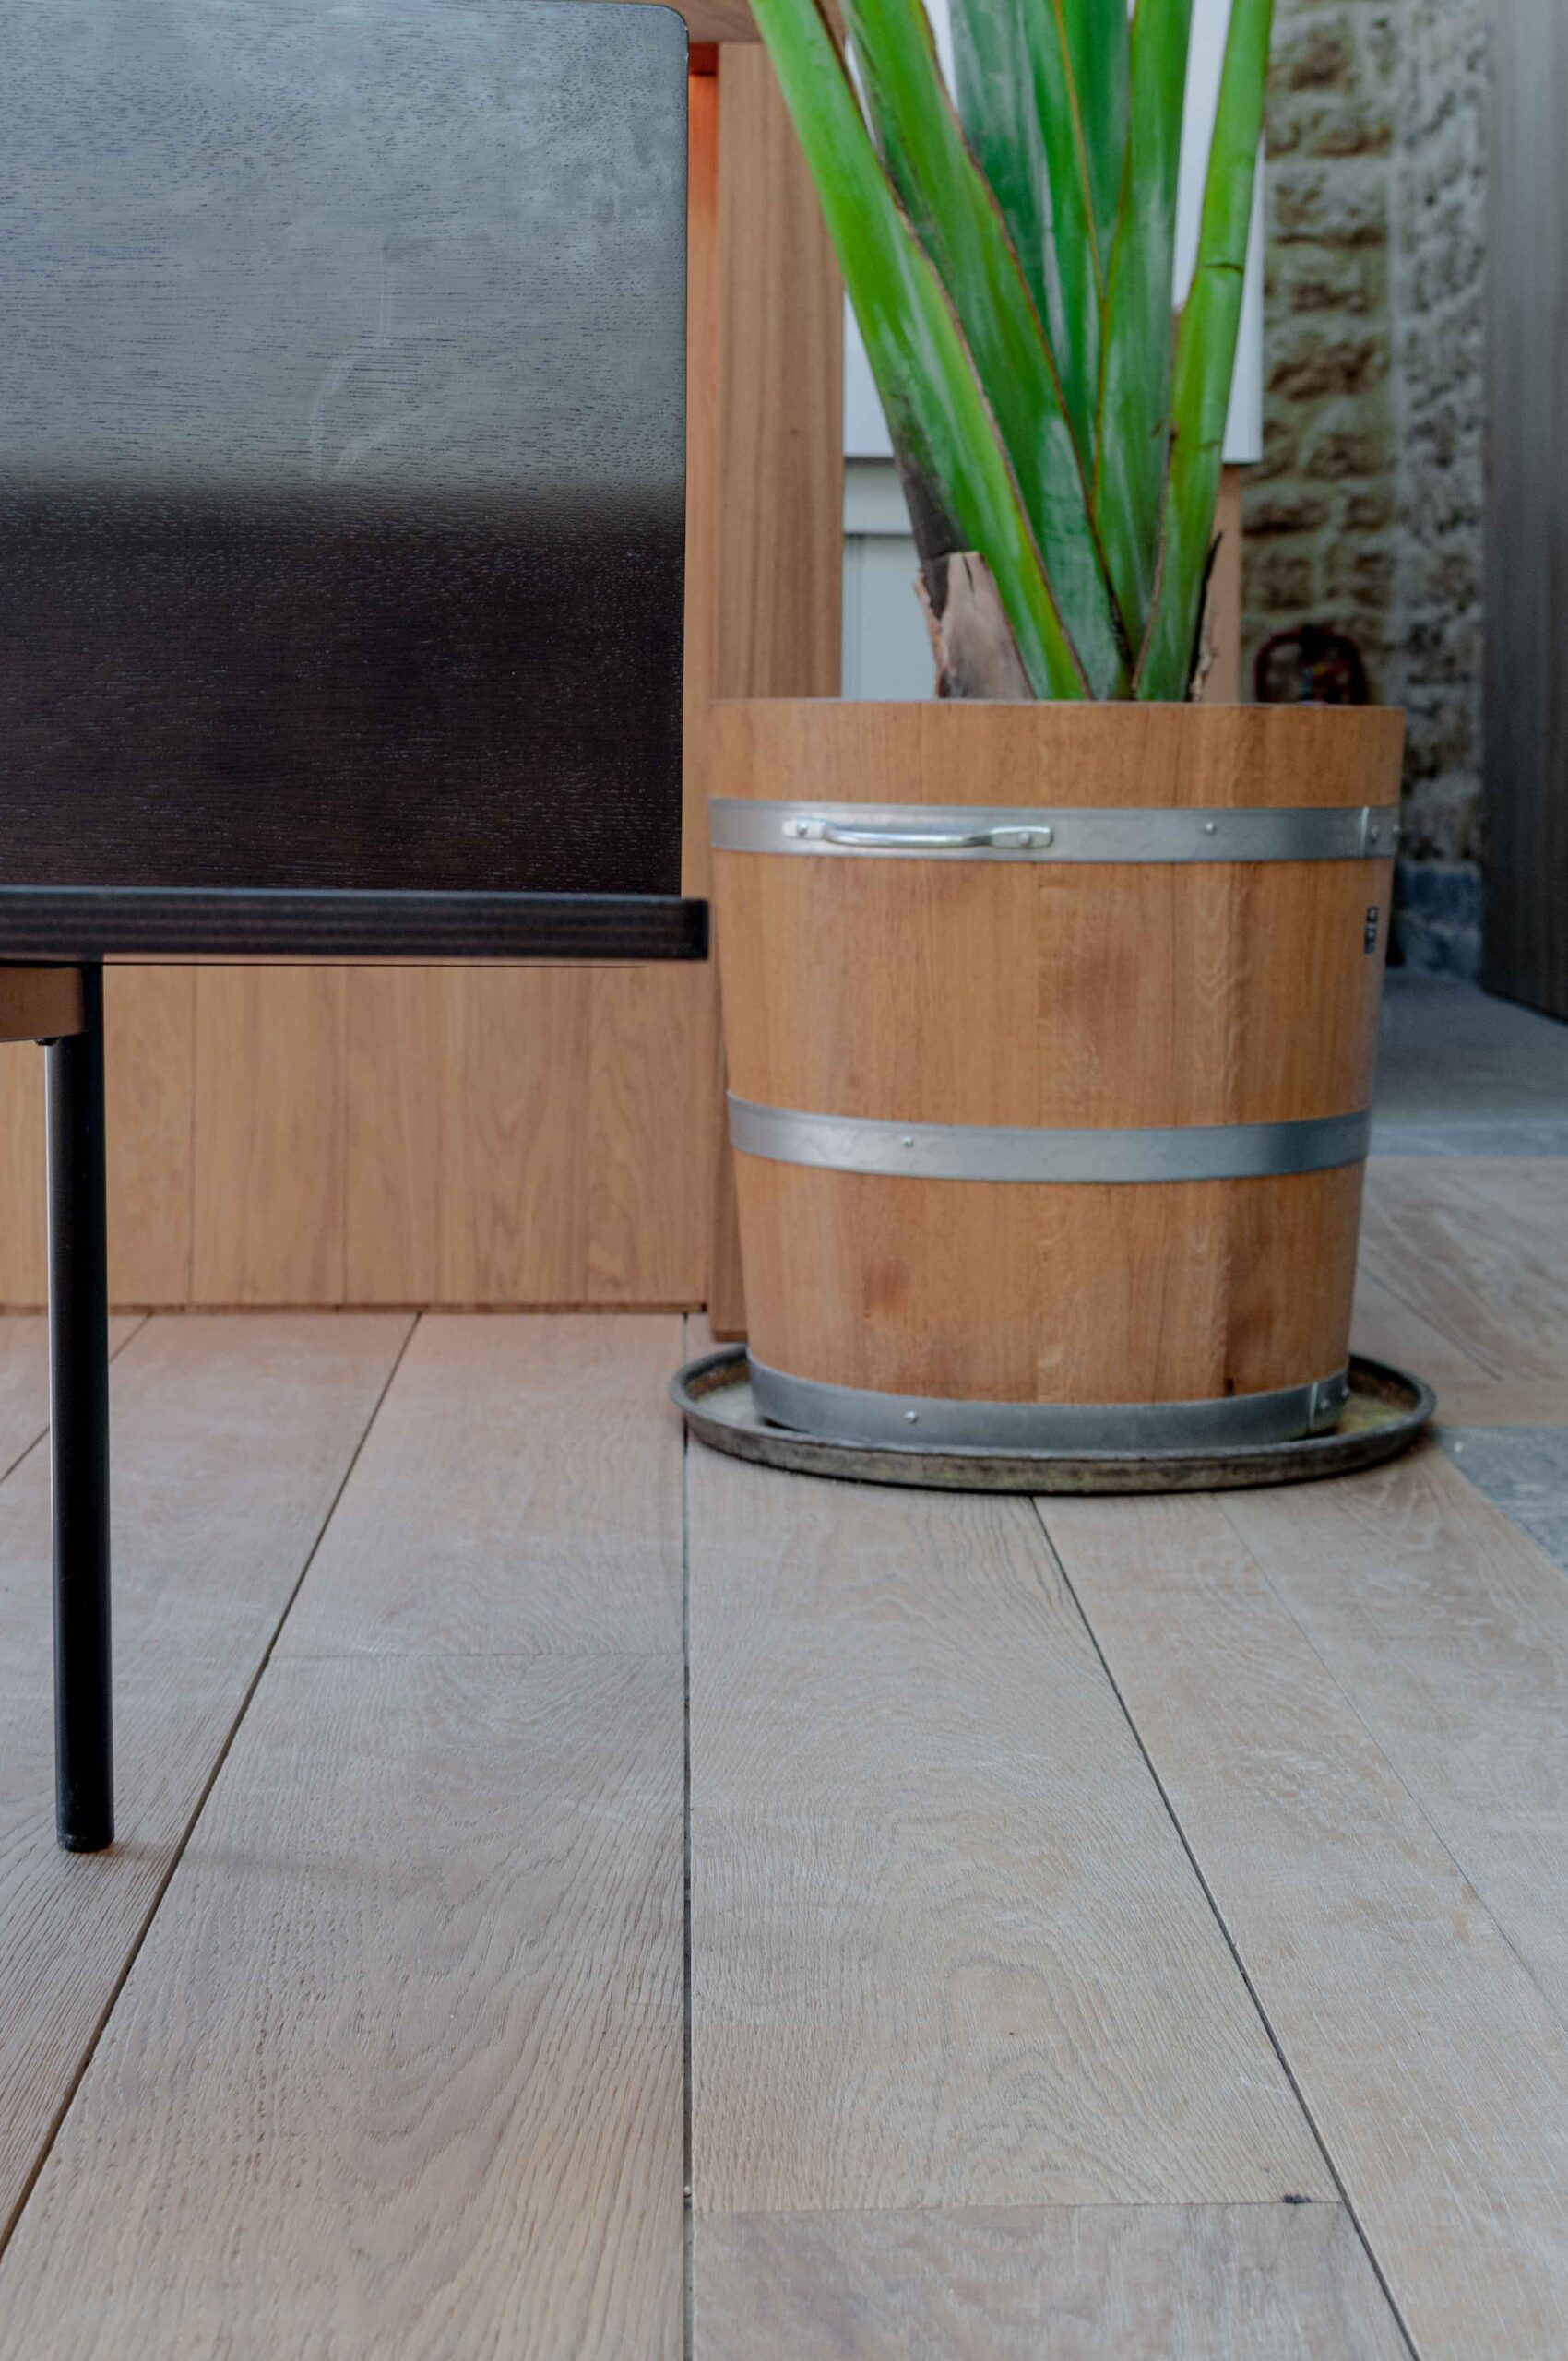 Invisible Lacquered Sawn and Brushed Wood Flooring In A Spa